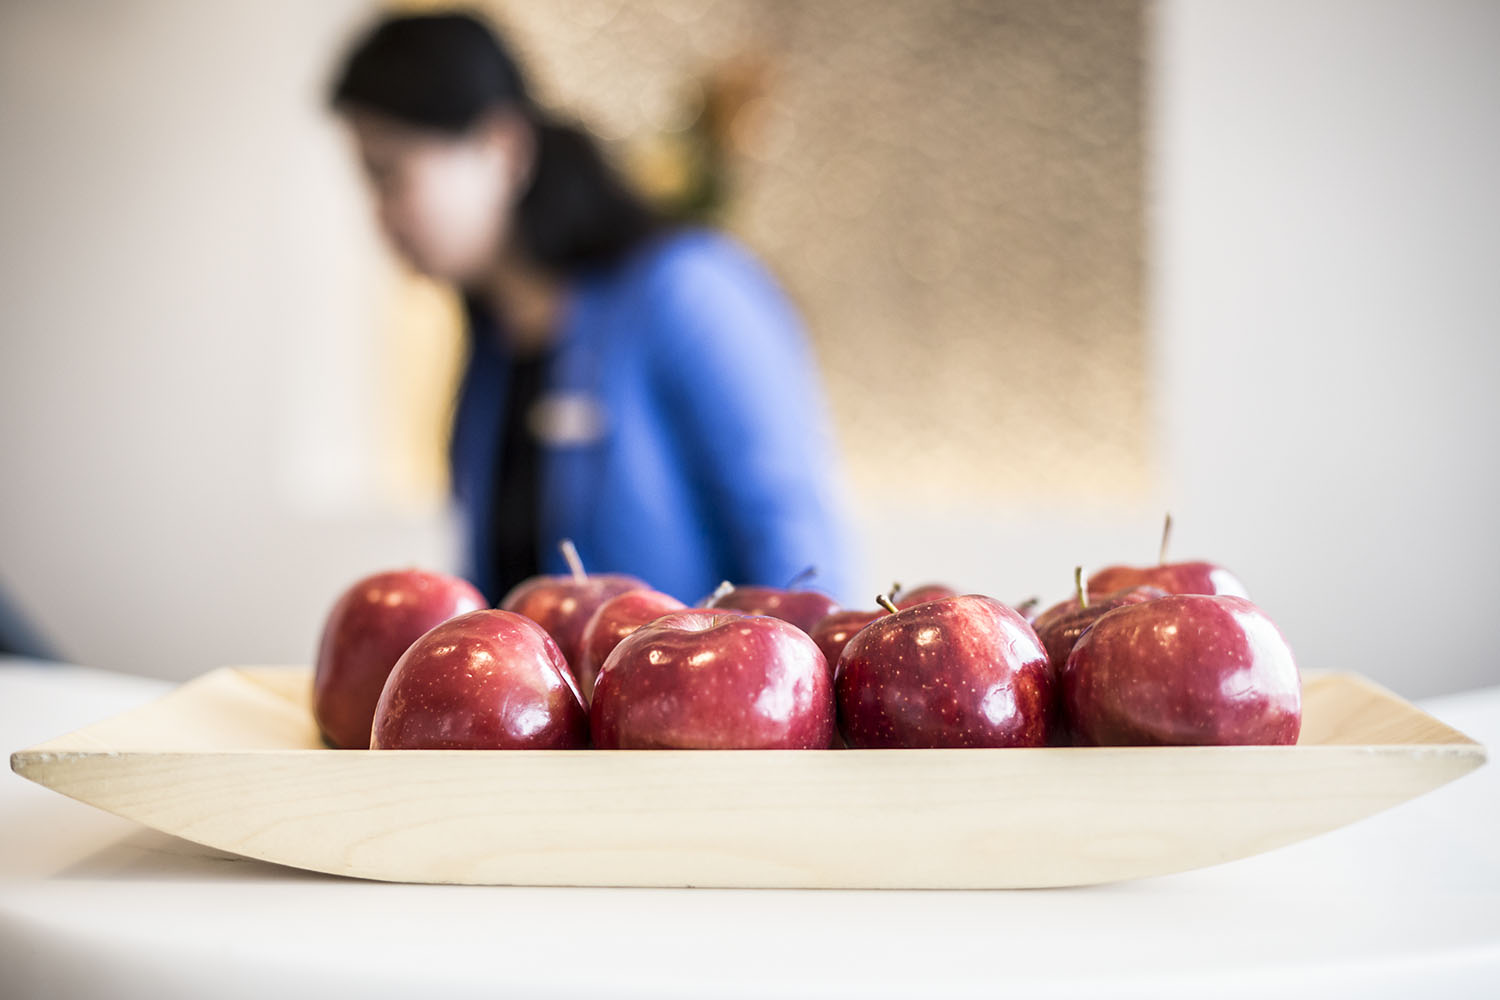 Grab an apple on your way into your Staycation suite at the Renaissance Hotel!